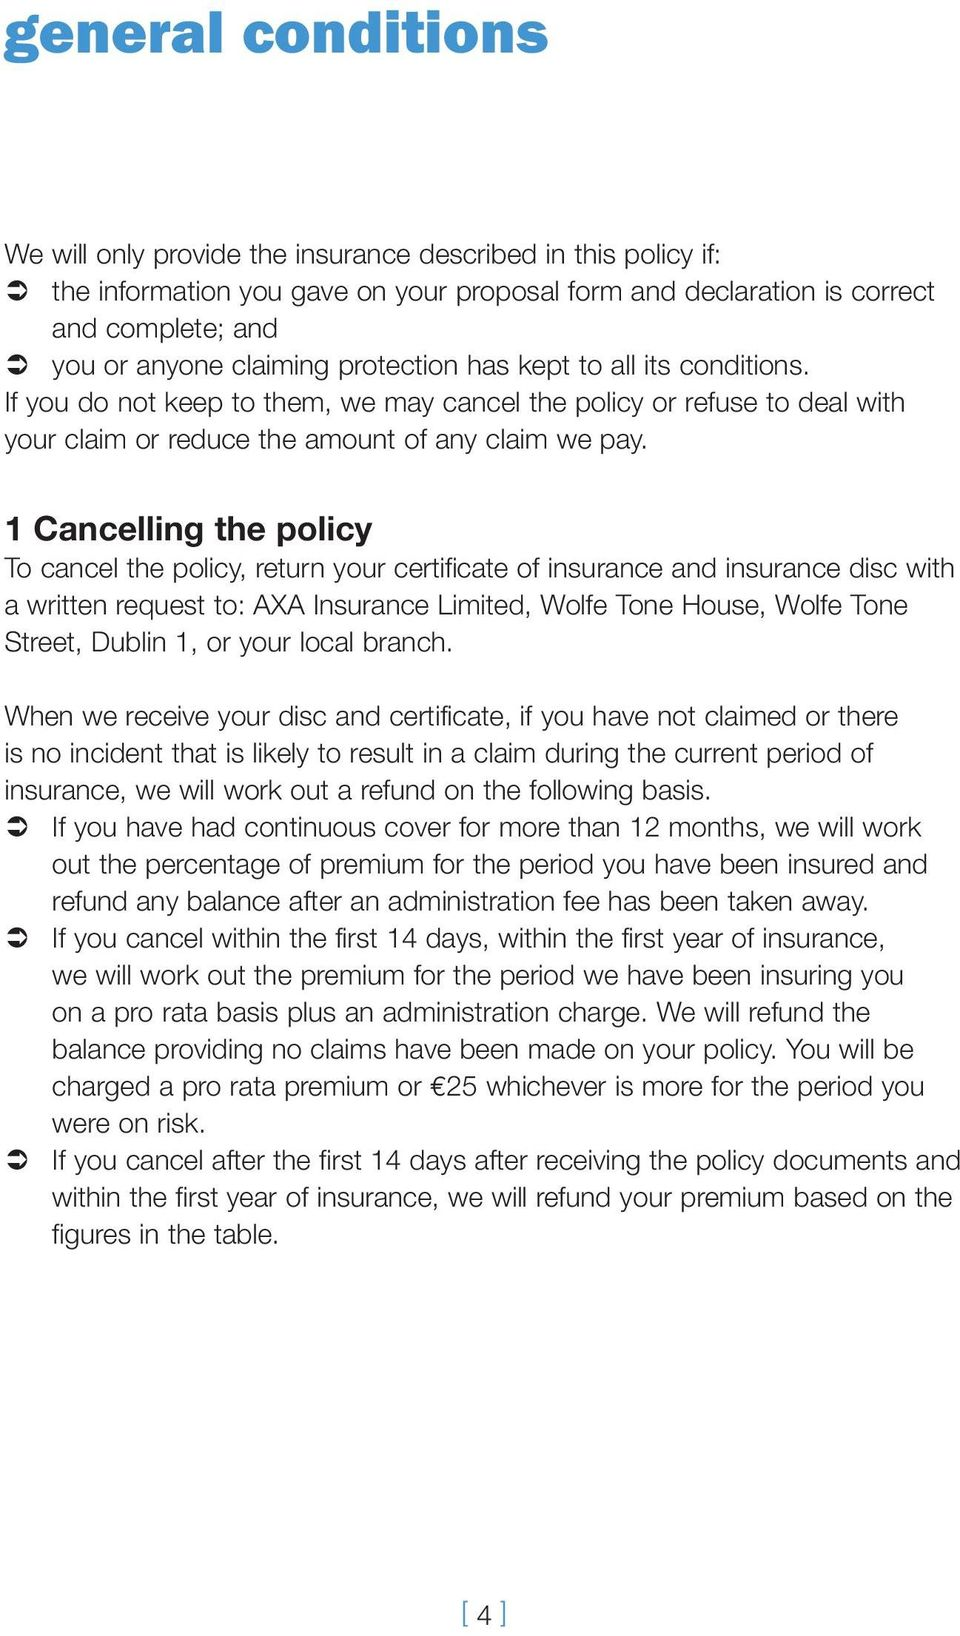 1 Cancelling the policy To cancel the policy, return your certificate of insurance and insurance disc with a written request to: AXA Insurance Limited, Wolfe Tone House, Wolfe Tone Street, Dublin 1,